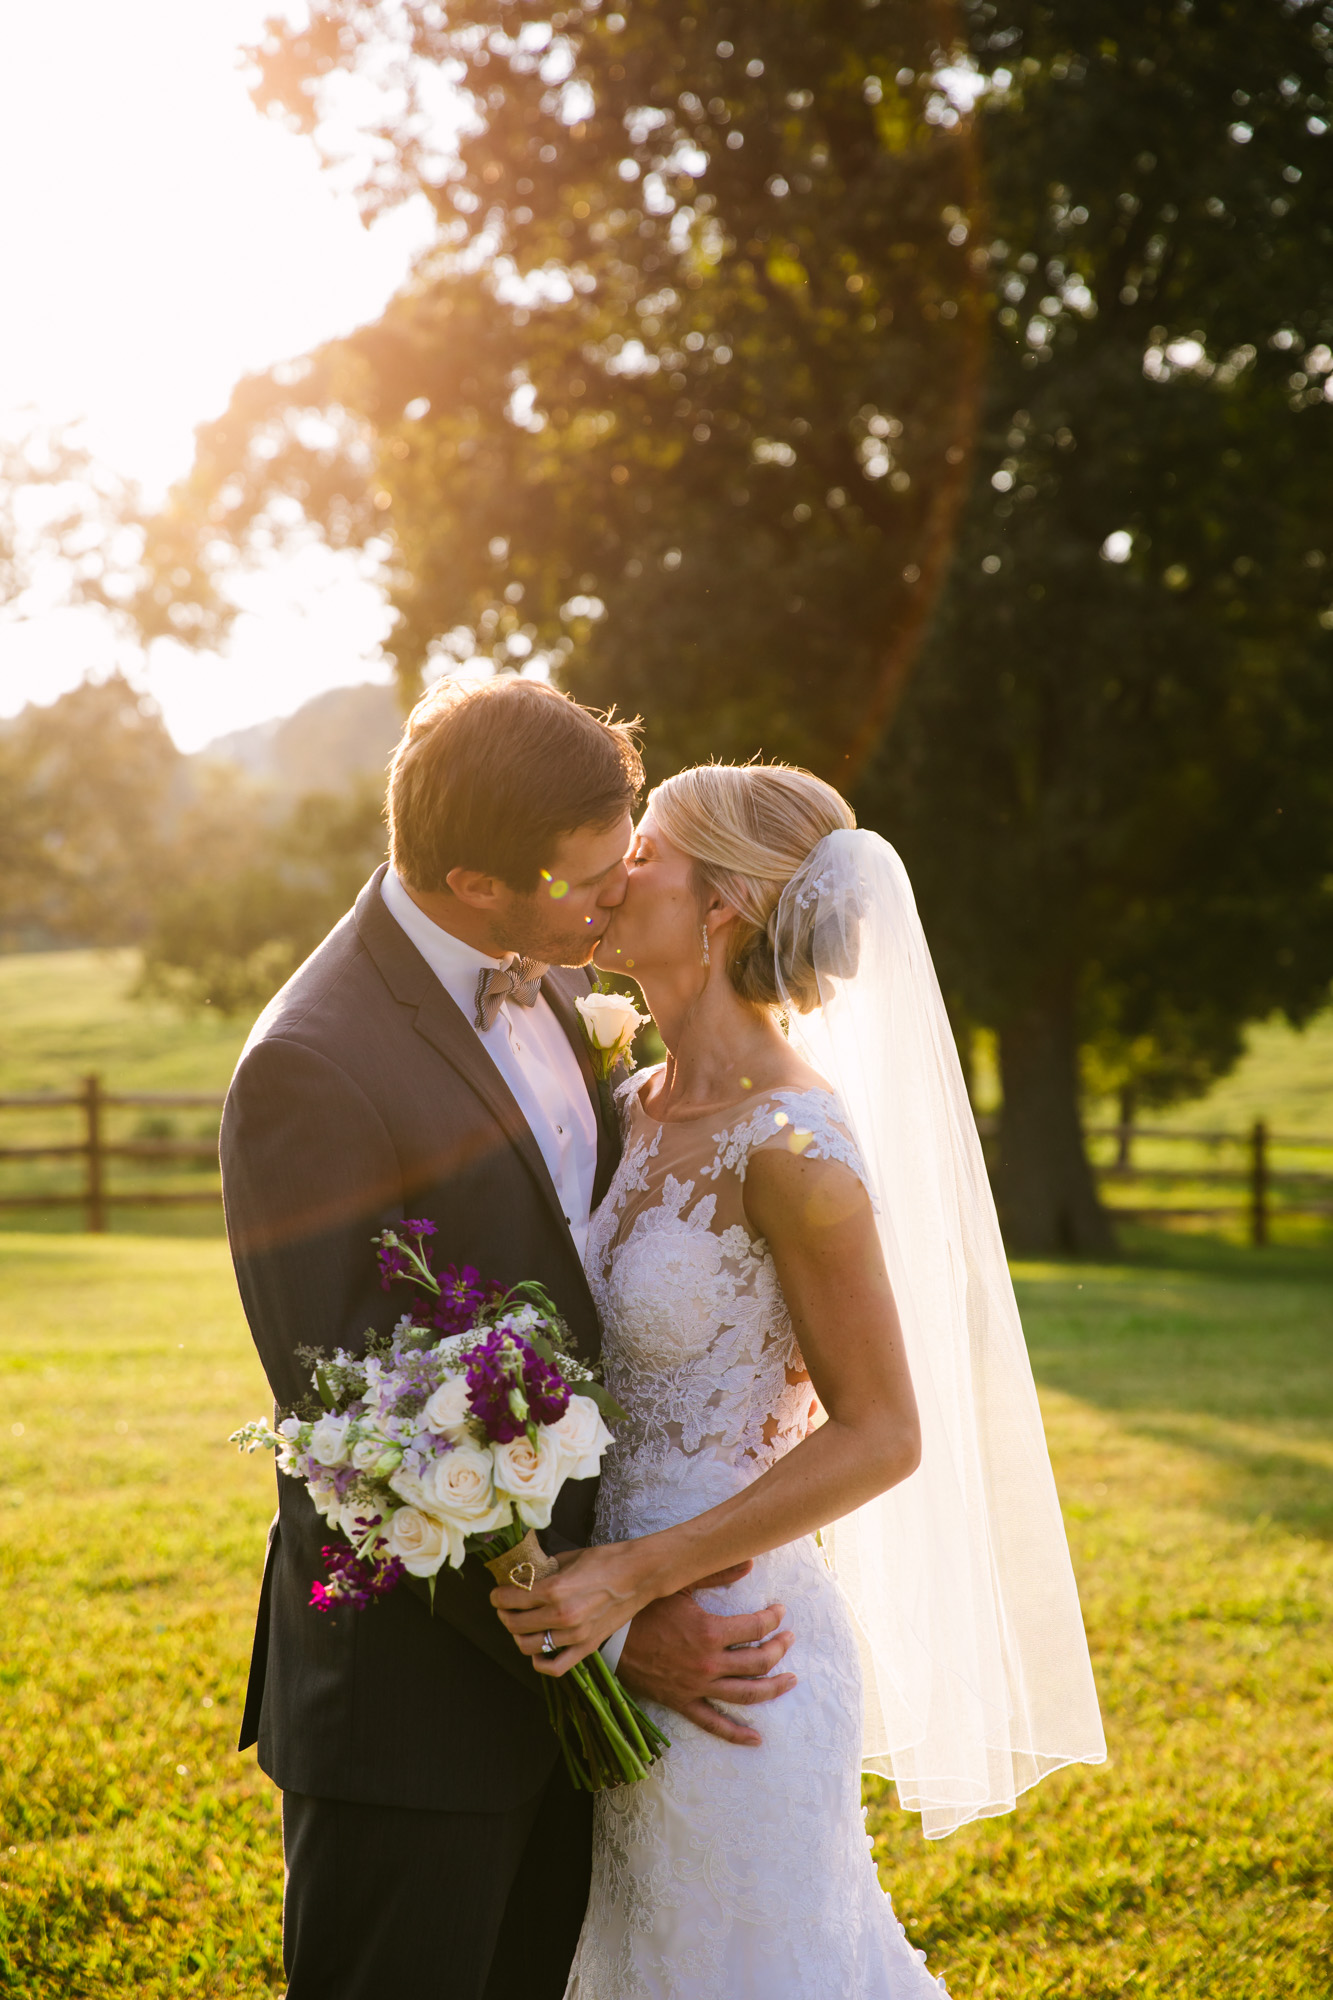 Waynesville, NC Wedding Photography | Bride and Groom Kissing Sun Flare